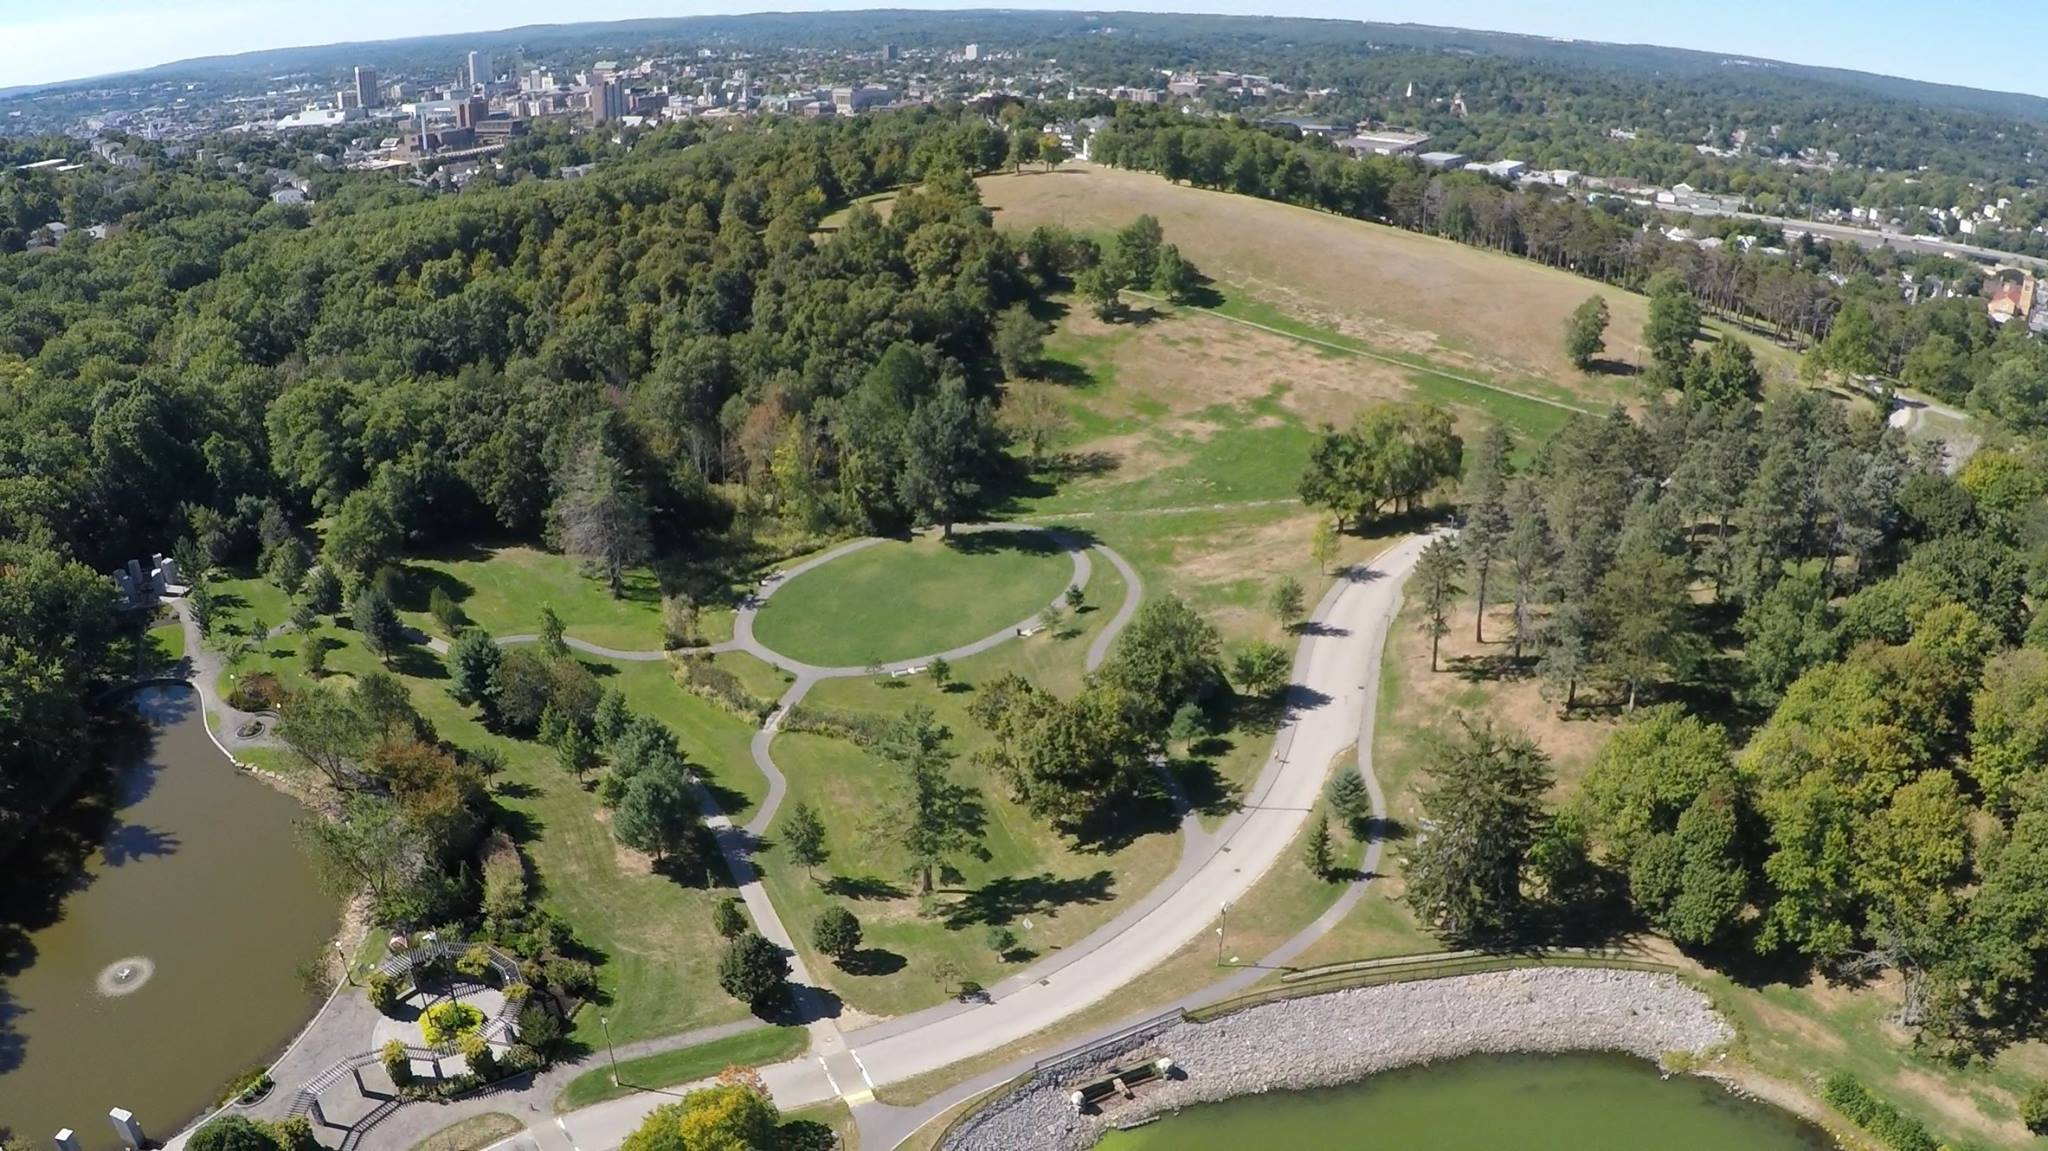 An aerial view of Green Hill Park with the Massachusetts Vietnam Veterans Memorial in the bottom left.